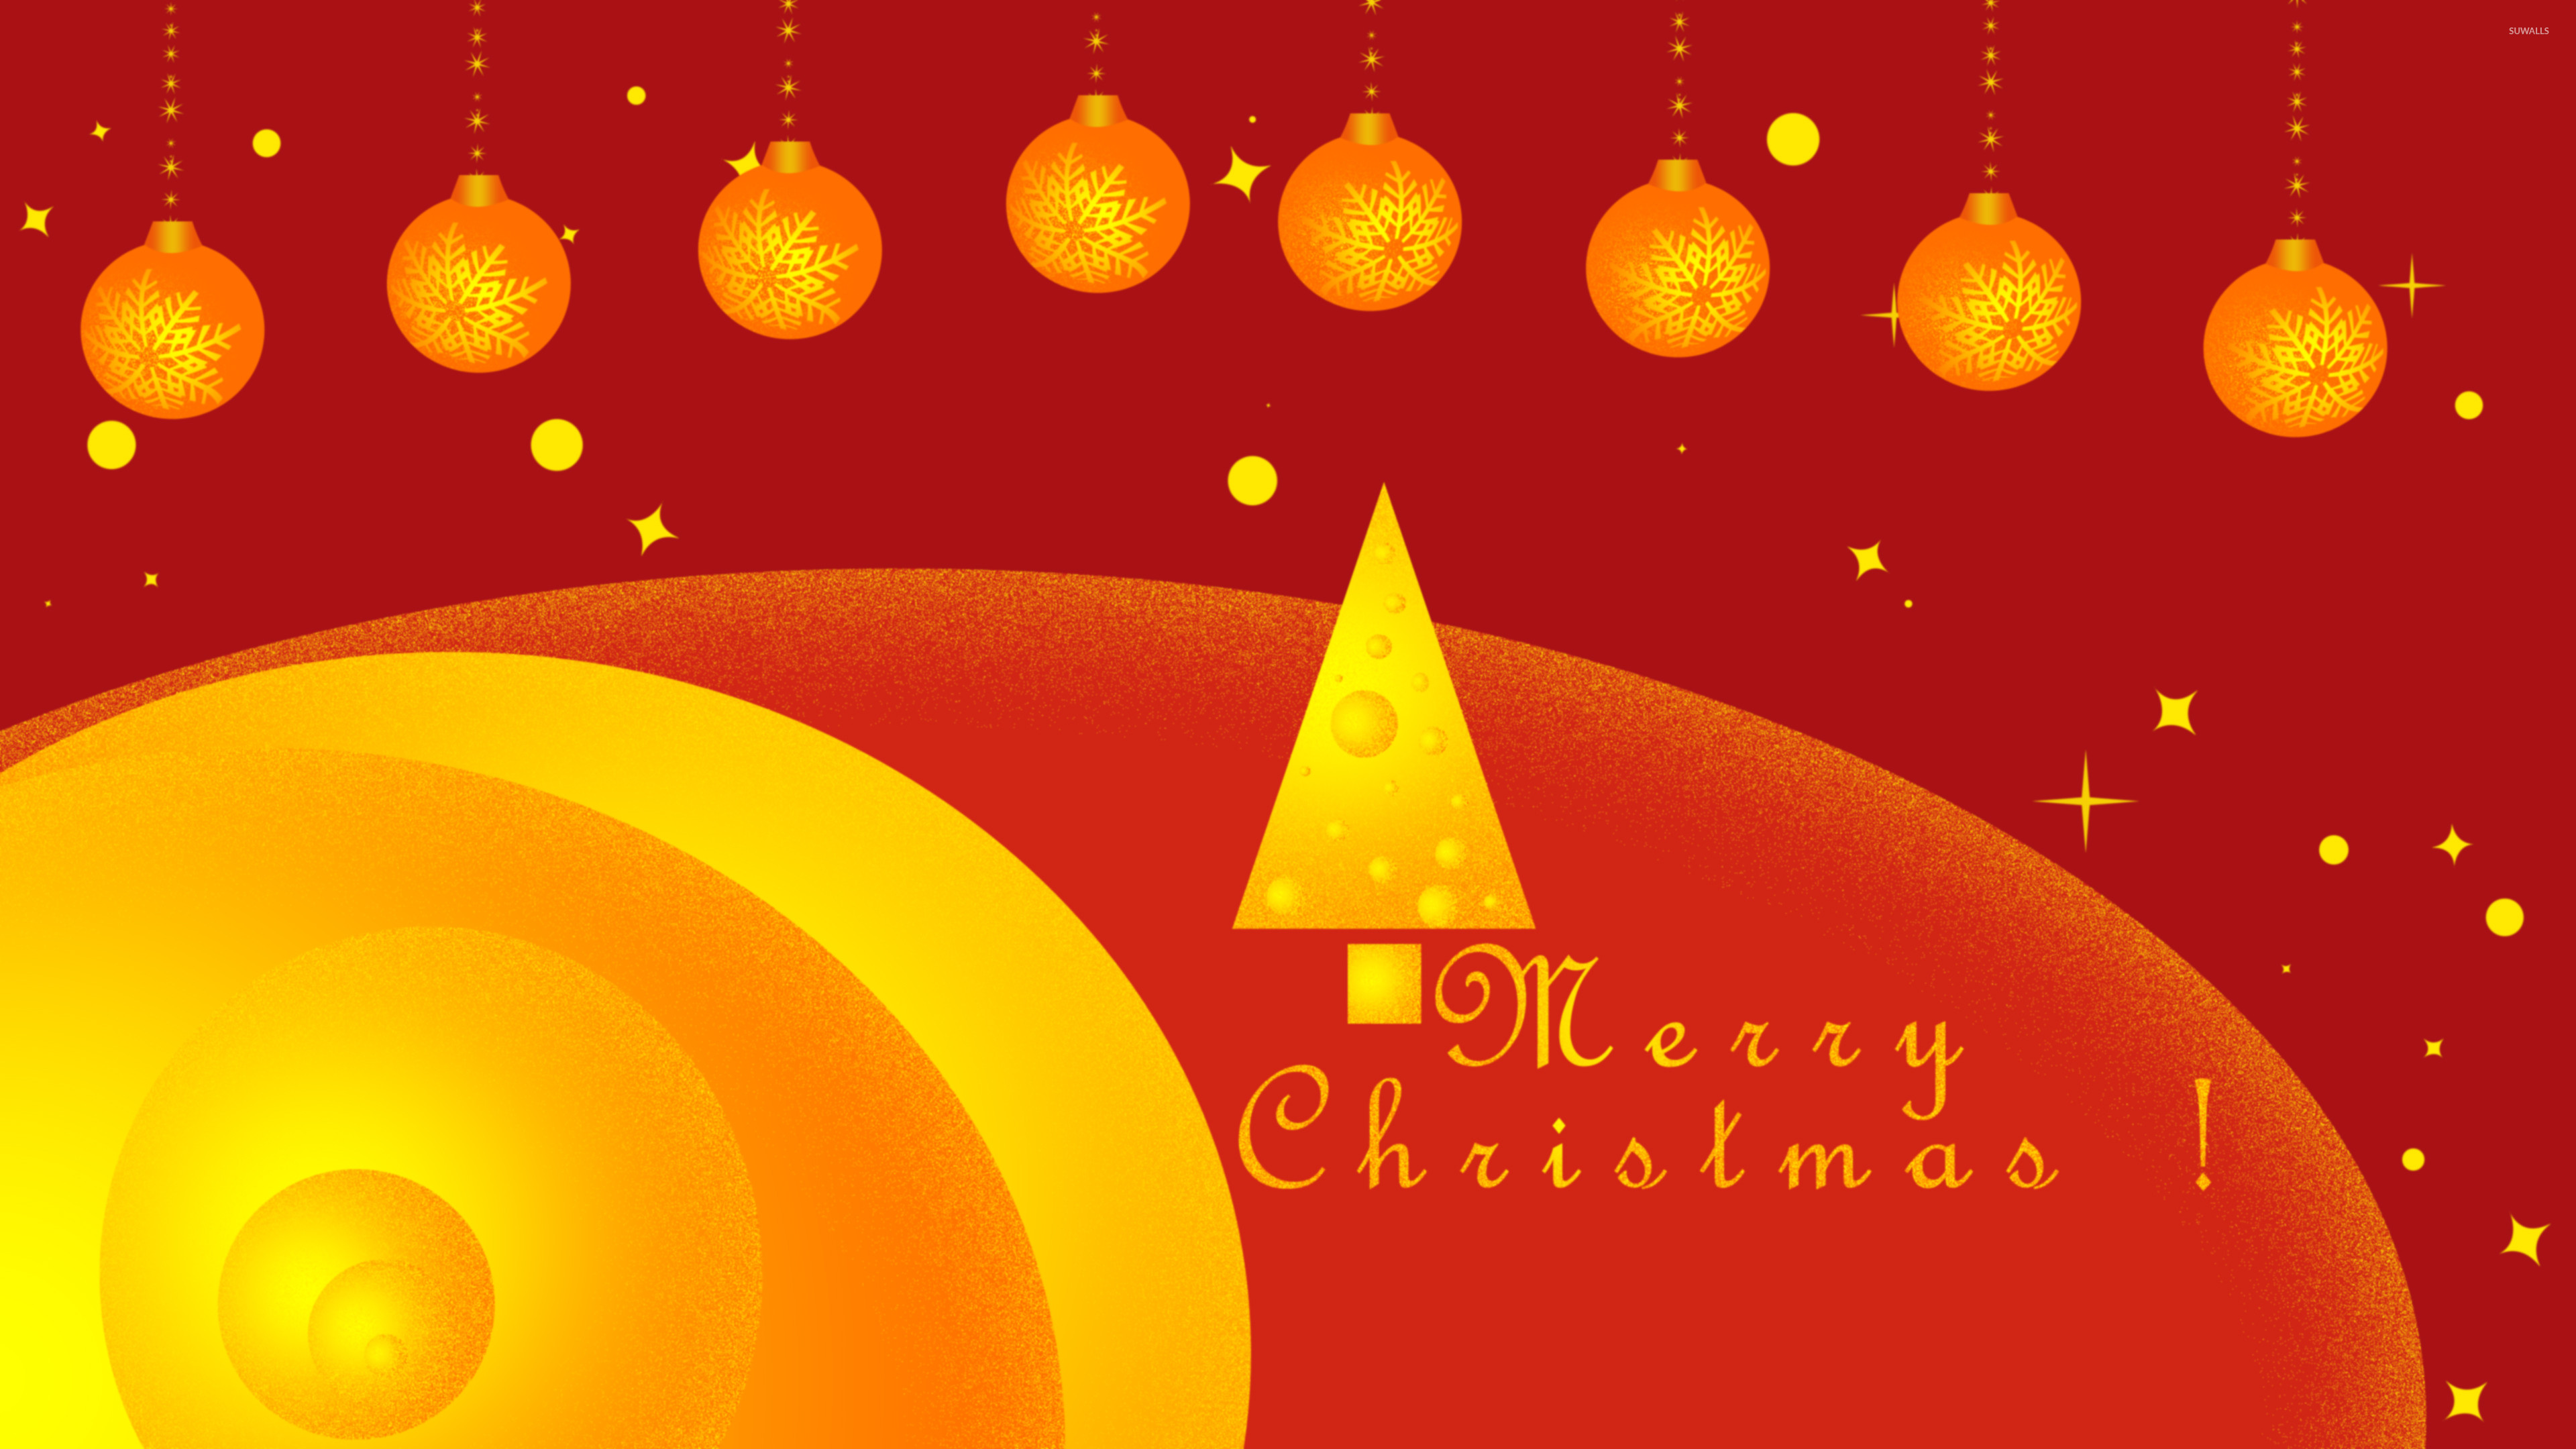 3840x2160 Golden Christmas tree and baubles wallpaper  jpg